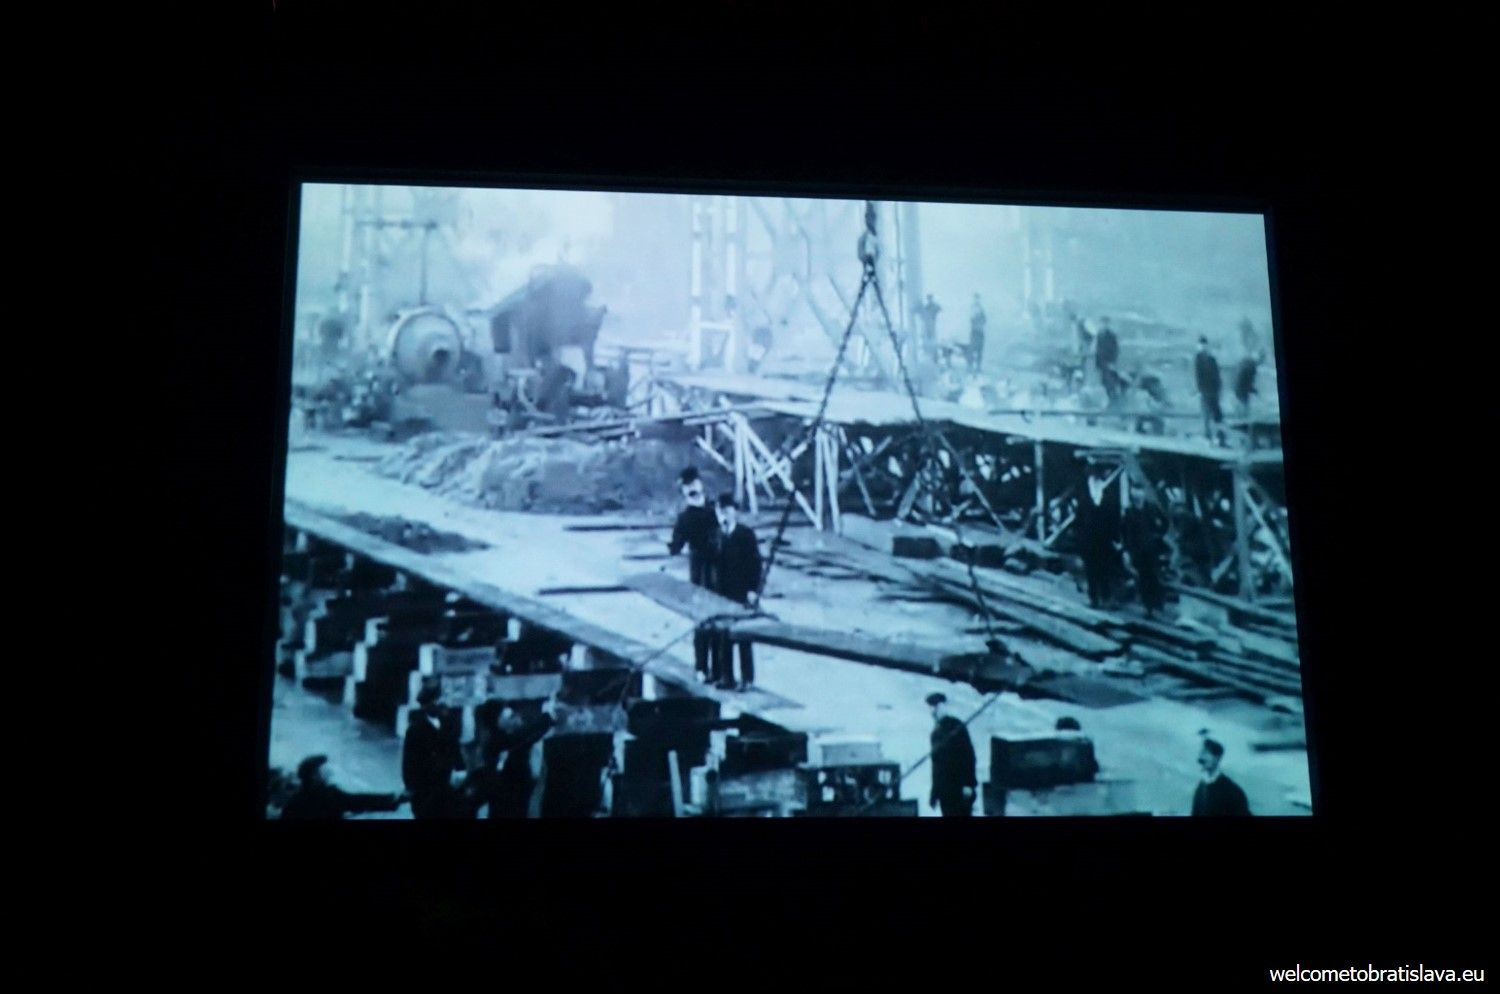 In the next room you will get to watch a short movie about how the ship was built and set out to sail.